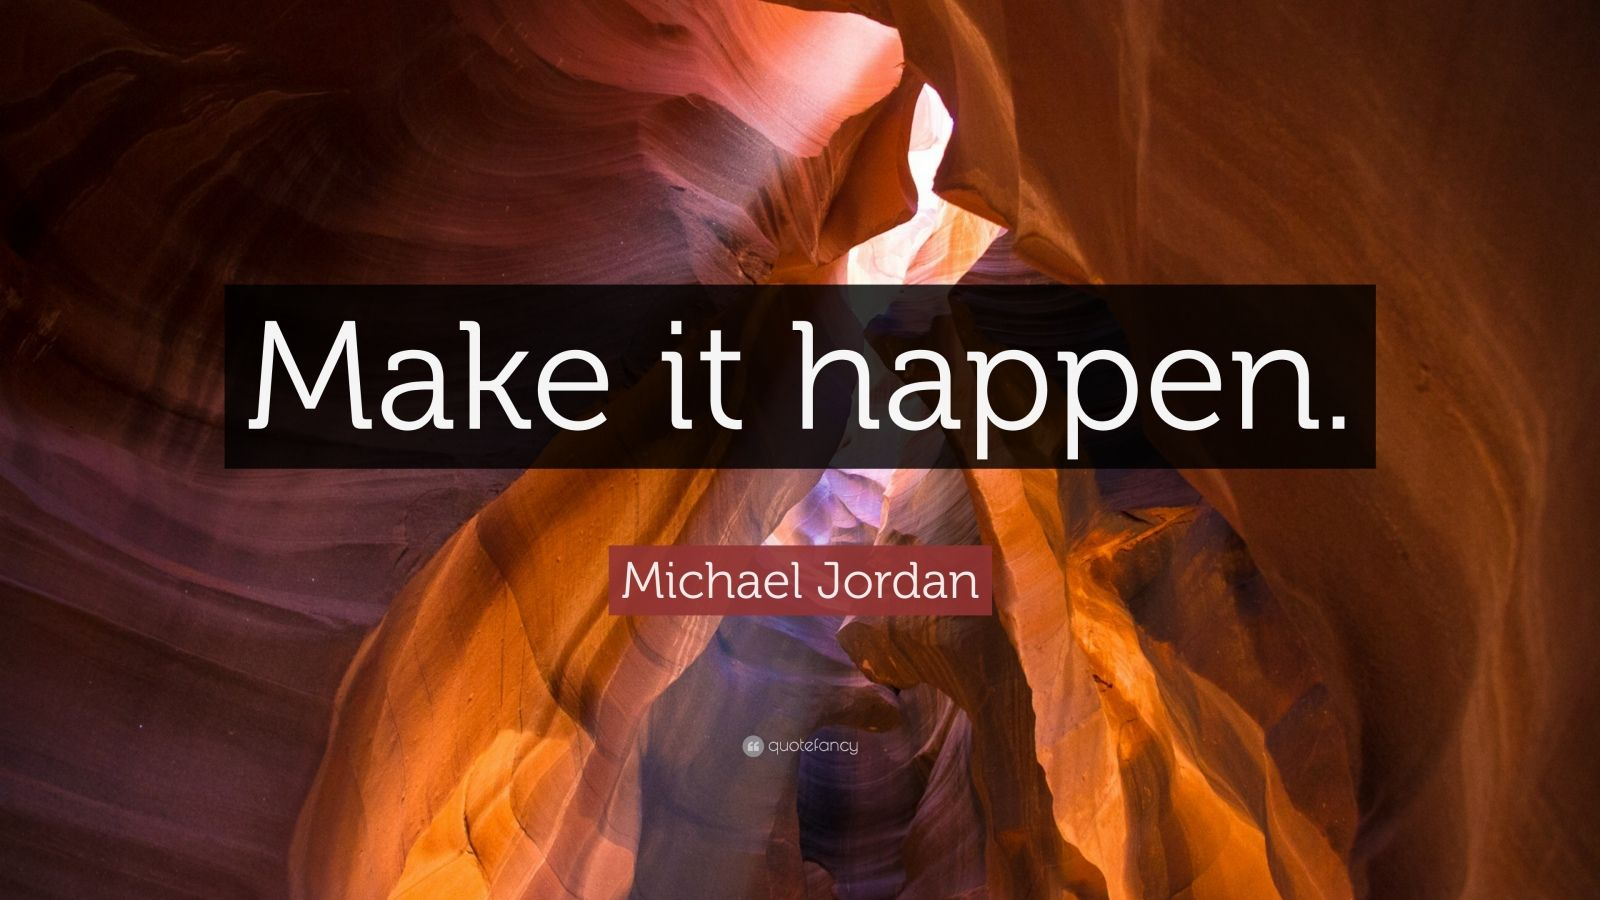 michael jordan quote   u201cmake it happen  u201d  17 wallpapers